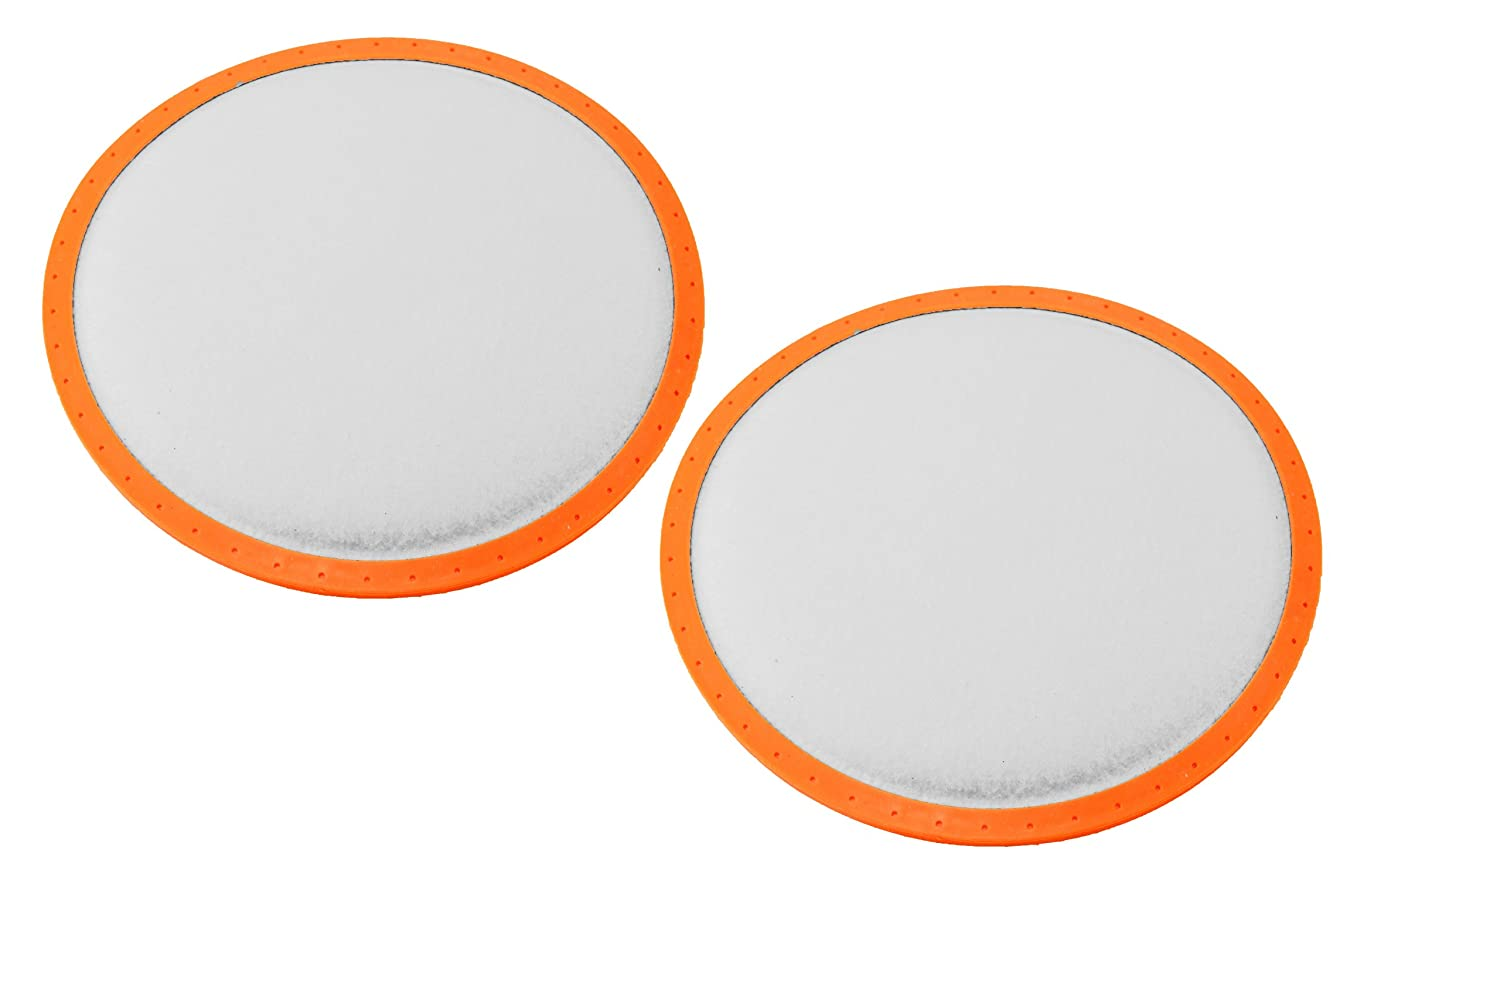 First4spares Pre Motor Type B Pad Filters for Vax Mach Air Force / Power 7 Vacuum Cleaners (Pack of 2)